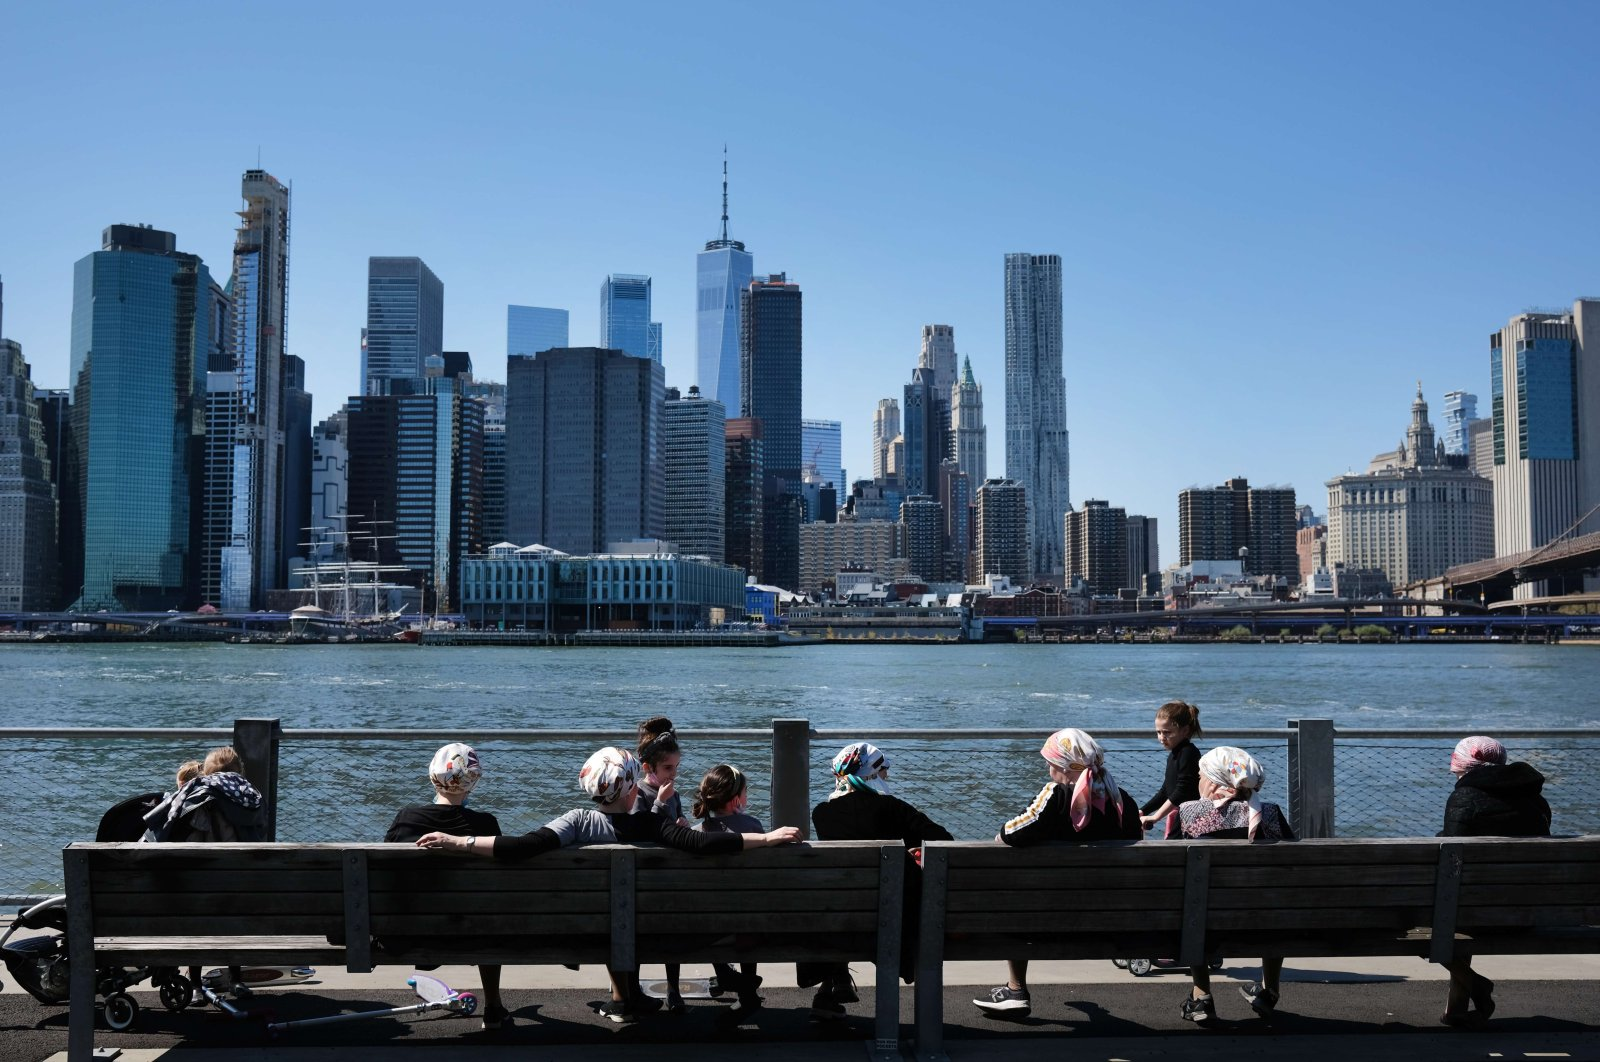 People enjoy a spring afternoon in Brooklyn Bridge Park on April 28, 2020 in the Brooklyn borough of New York City. (AFP Photo)